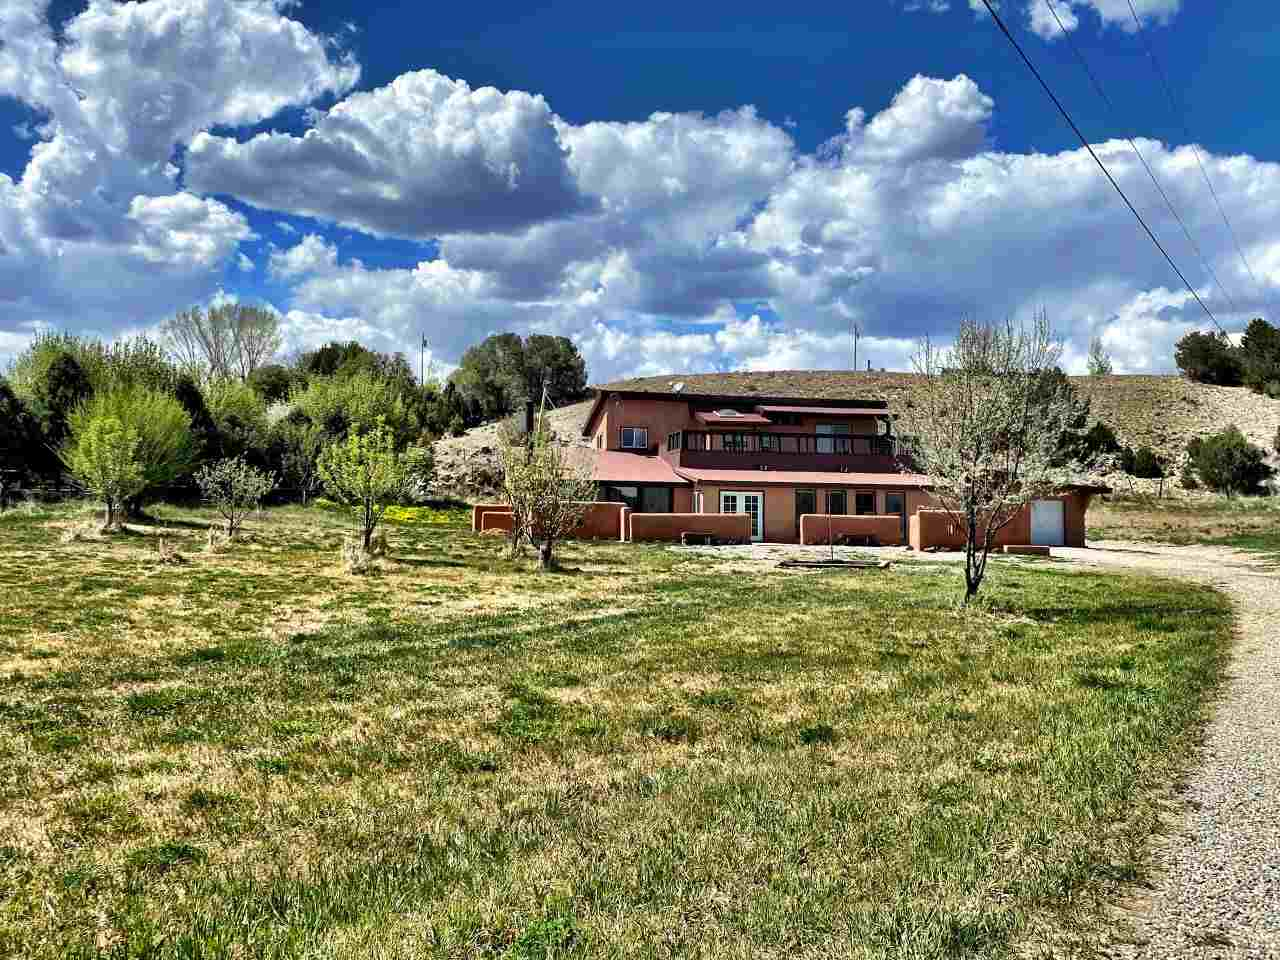 67 Lower Arroyo Hondo Road, arroyo hondo, NM 87513